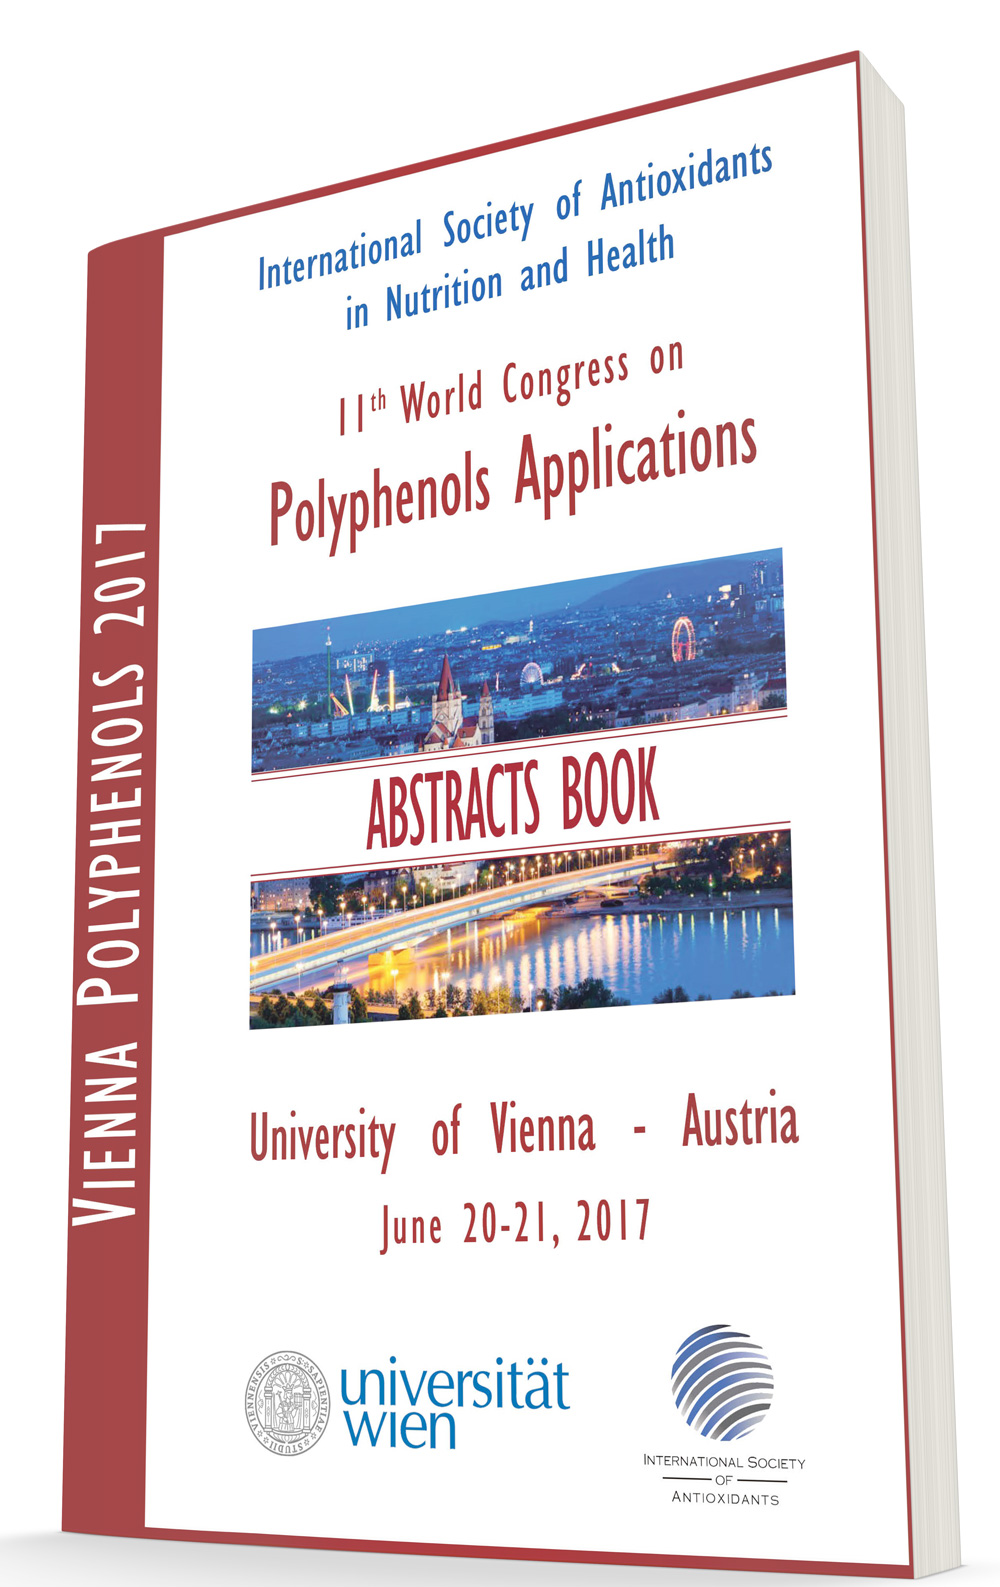 Polyphenols 2017 abstract book available for order